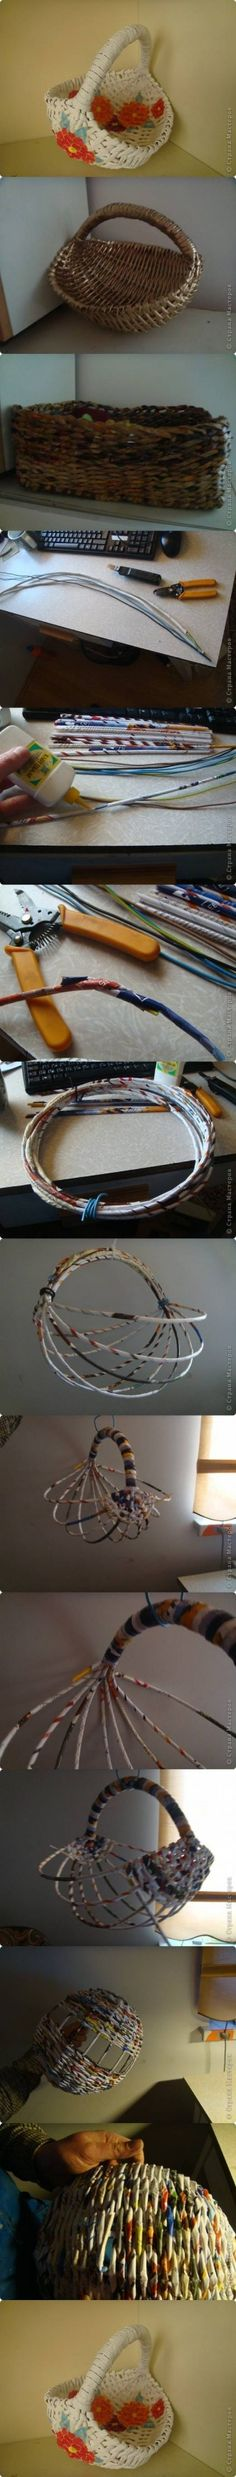 DIY Handmade Basket DIY Projects